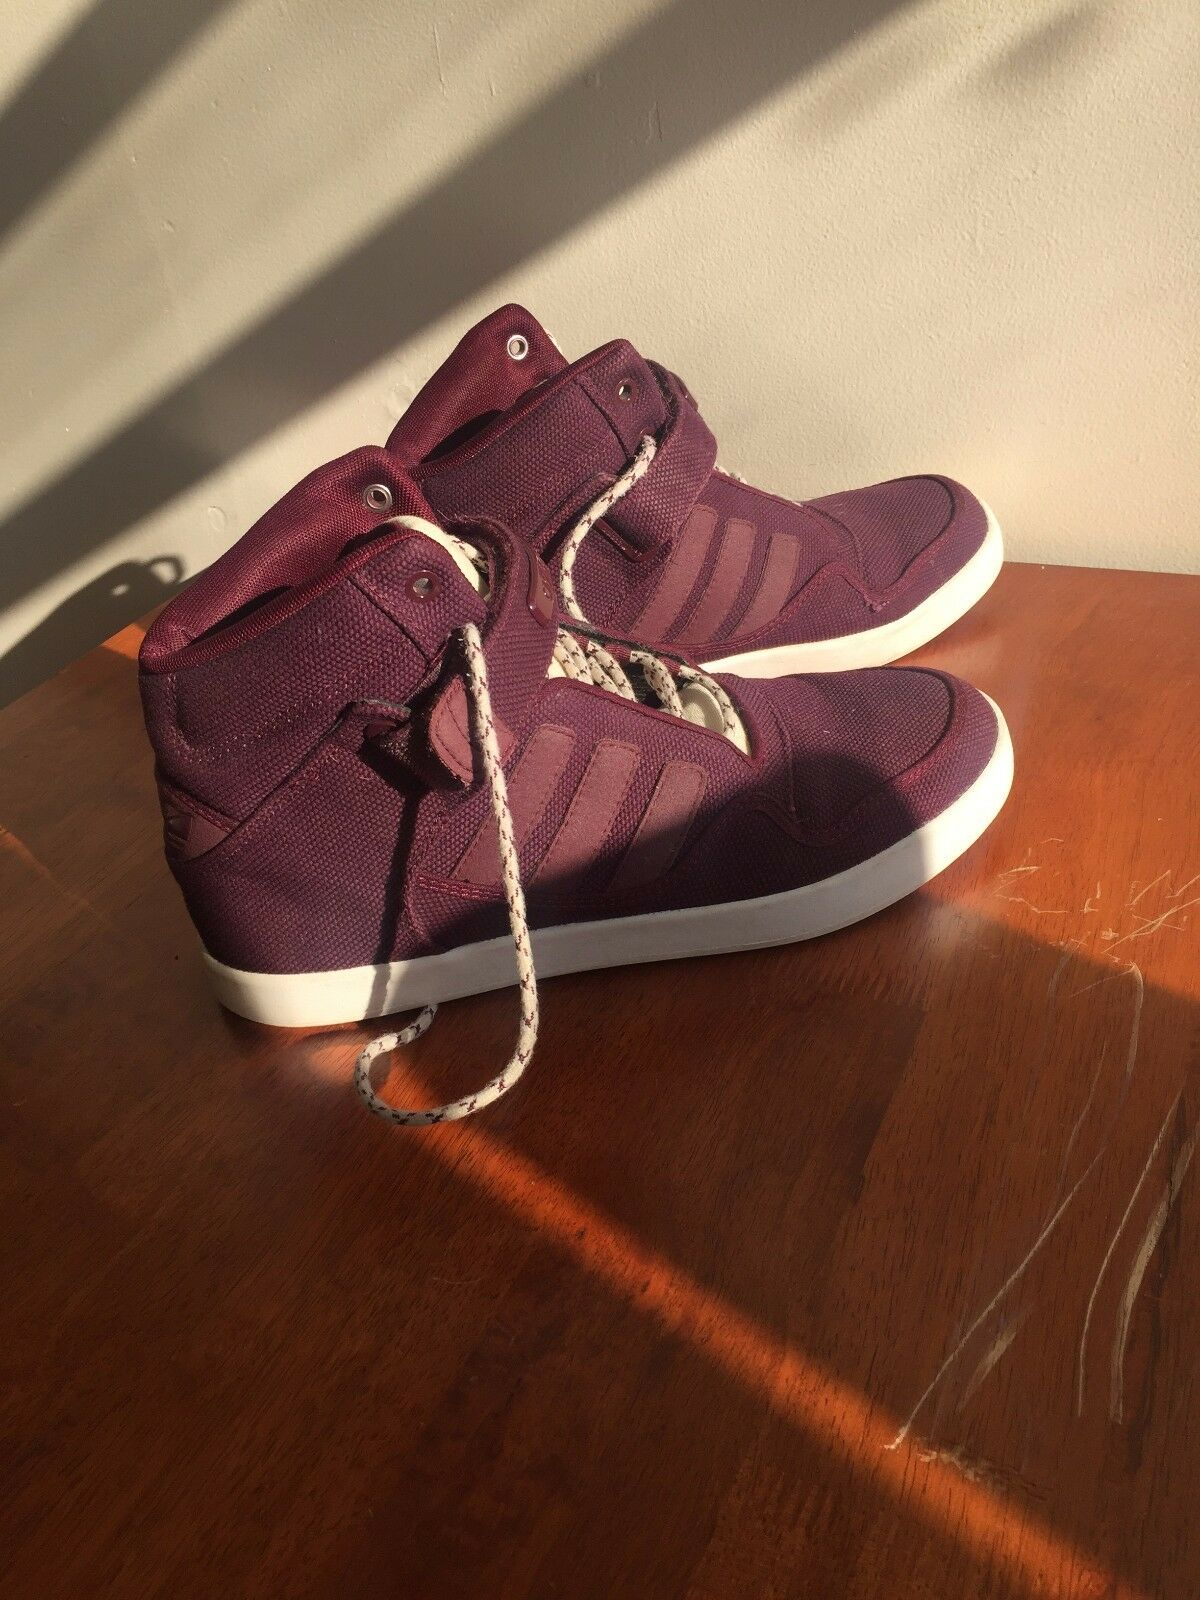 Adidas High Top burgundy classic collection sneakers size 9,5